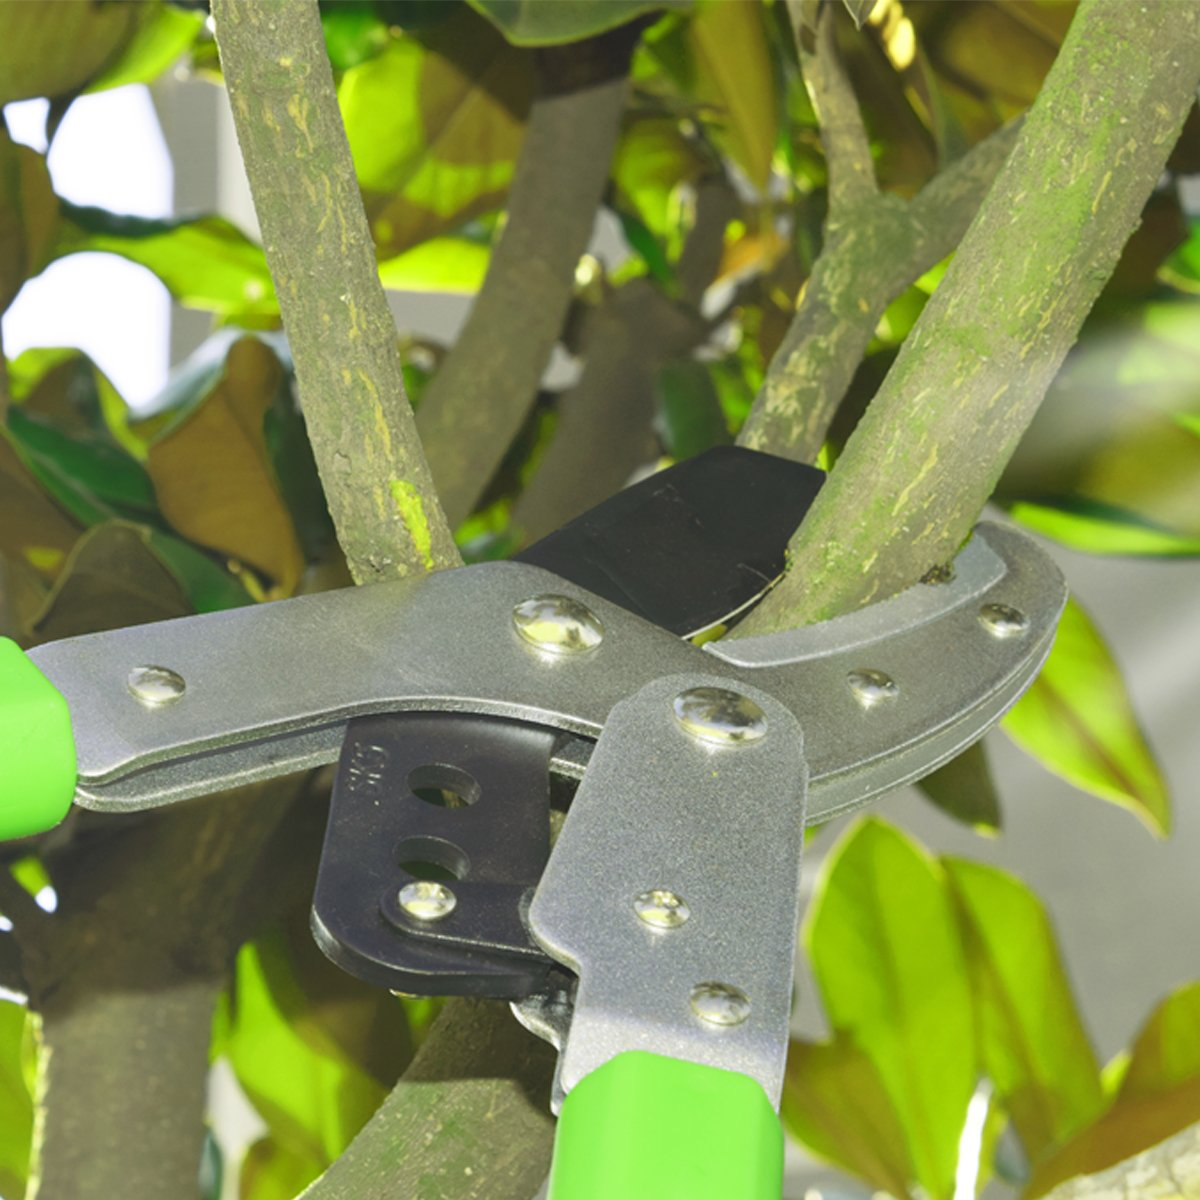 Telescoping Aluminium Light-weight Handle Garden Hedge /& Tree Lopper With Lever Drive System 28 ~ 40 inch Extendable Anvil Bypass Razor-Edge Pruning Lopper Up to 2 Inch Cutting Capacity